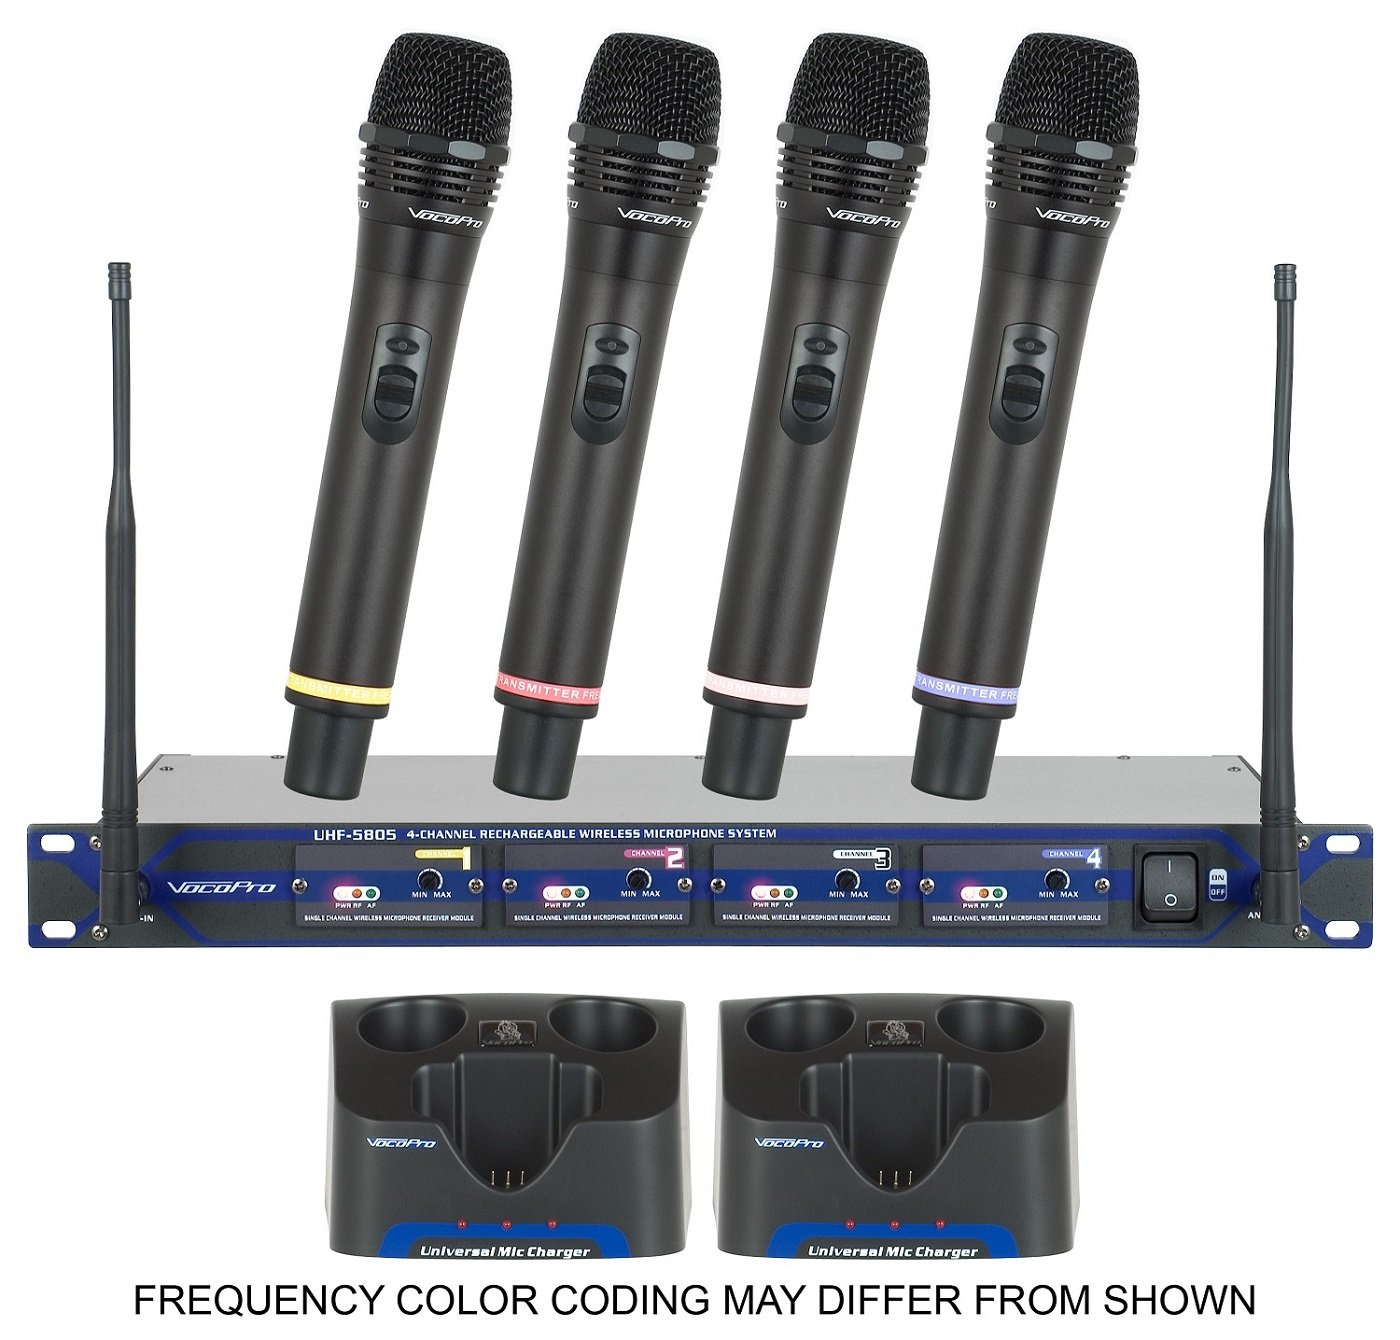 vocopro uhf 5805 4 ch uhf rechargeable wireless microphone system 900mhz. Black Bedroom Furniture Sets. Home Design Ideas